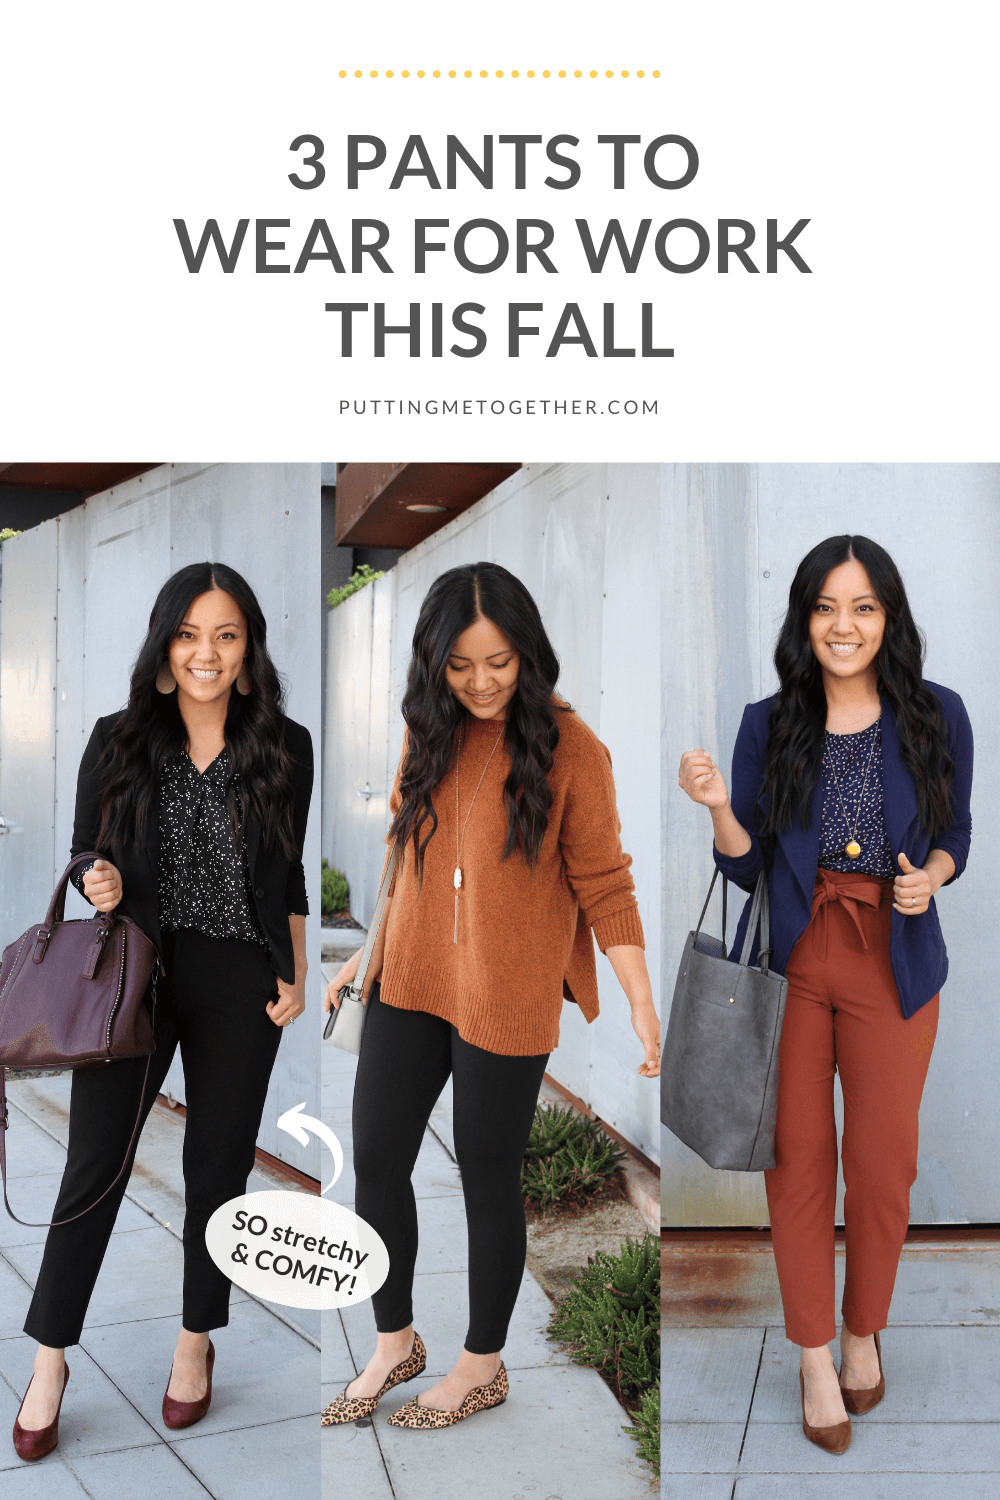 3 Pants for Work This Fall